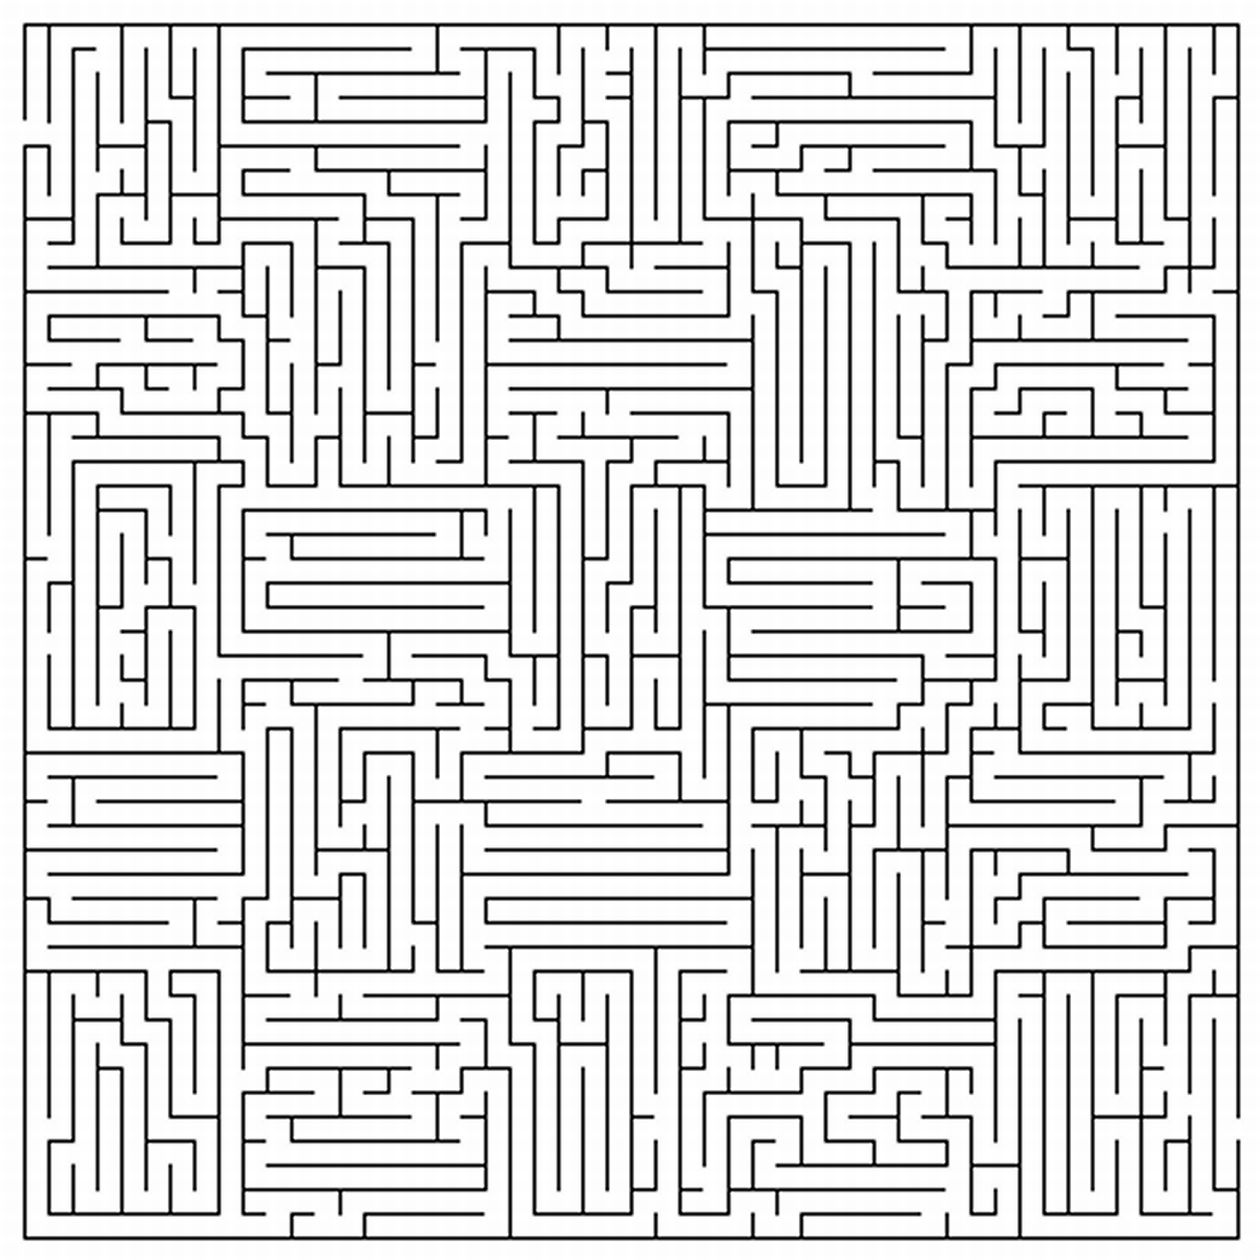 6 Images of Free Printable Hard Mazes For Adults